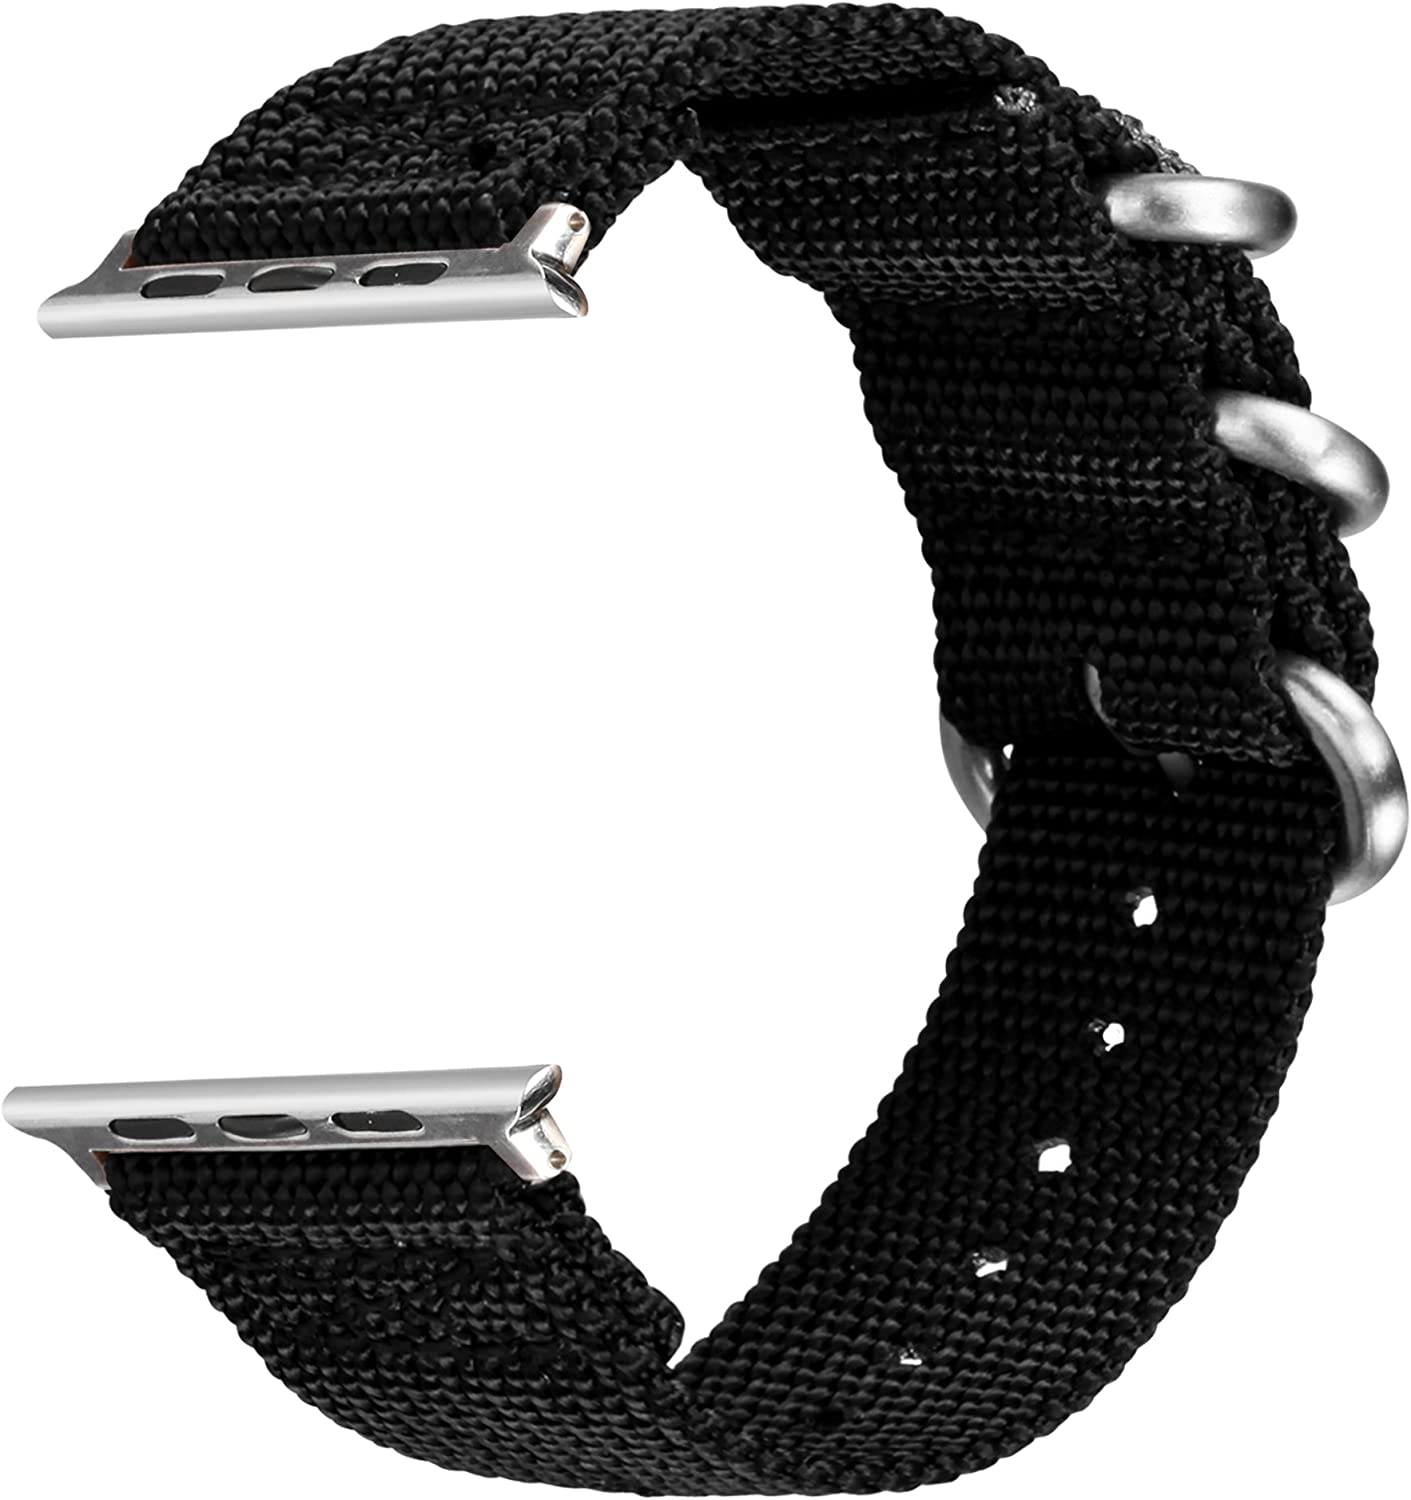 VIGOSS Band for 44mm Apple Watch Bands 42mm, Woven Nylon NATO iWatch Bands Soft Replacement Strap with Metal Ring Buckle Bracelet for Apple Watch Series 4 3 2 1 Sport Men (Black,42mm/44mm)